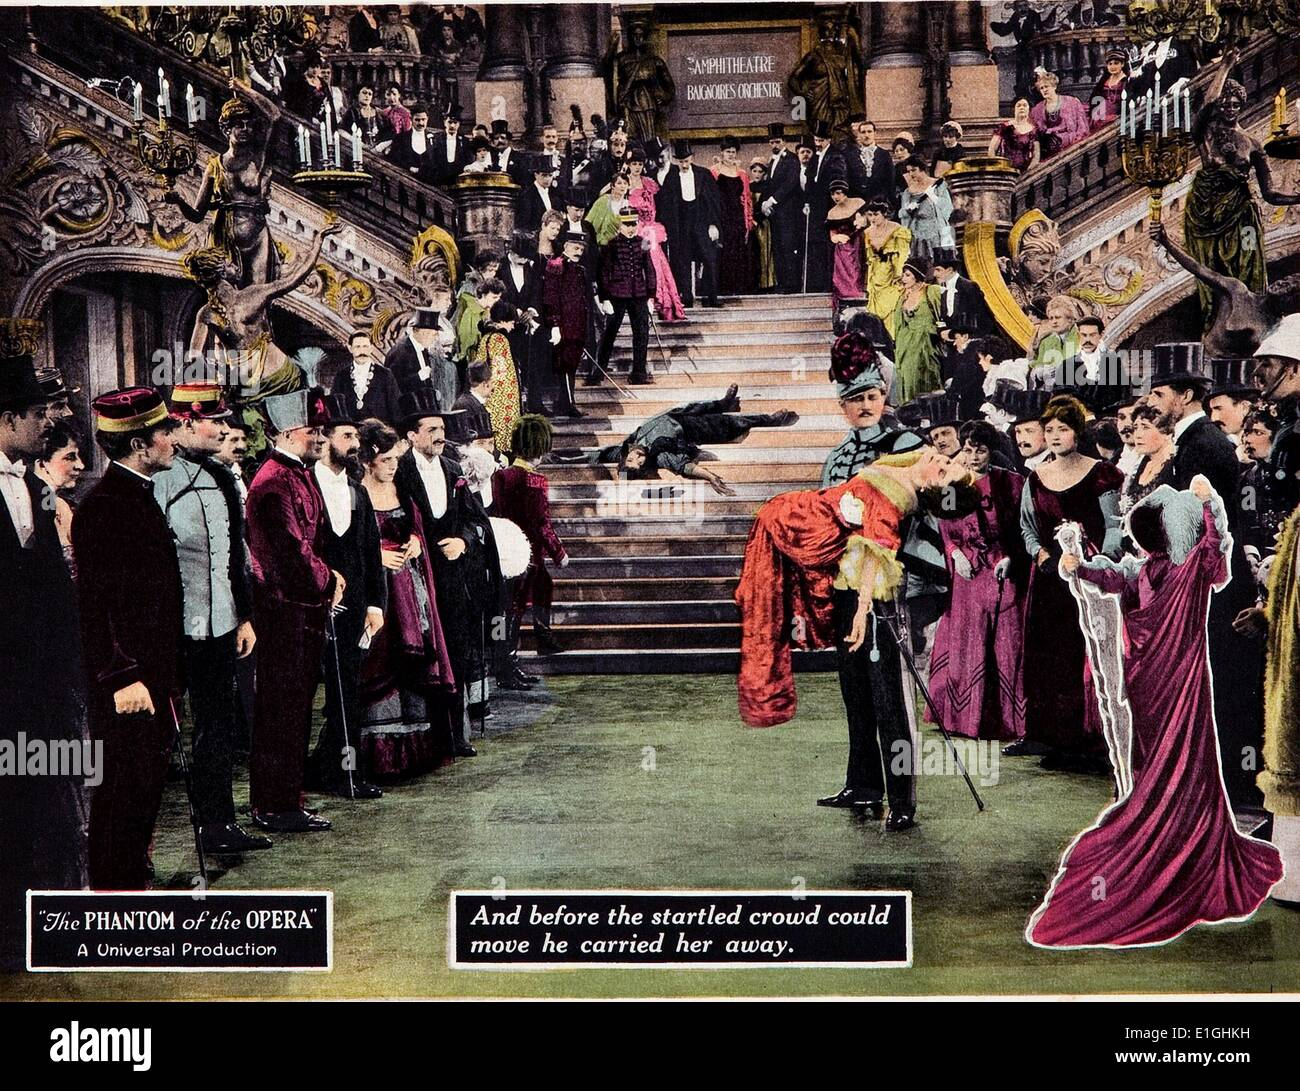 'The Phantom of the Opera' a 1925 American silent horror film adaptation of Gaston Leroux's 1910 novel of the same name. It - Stock Image